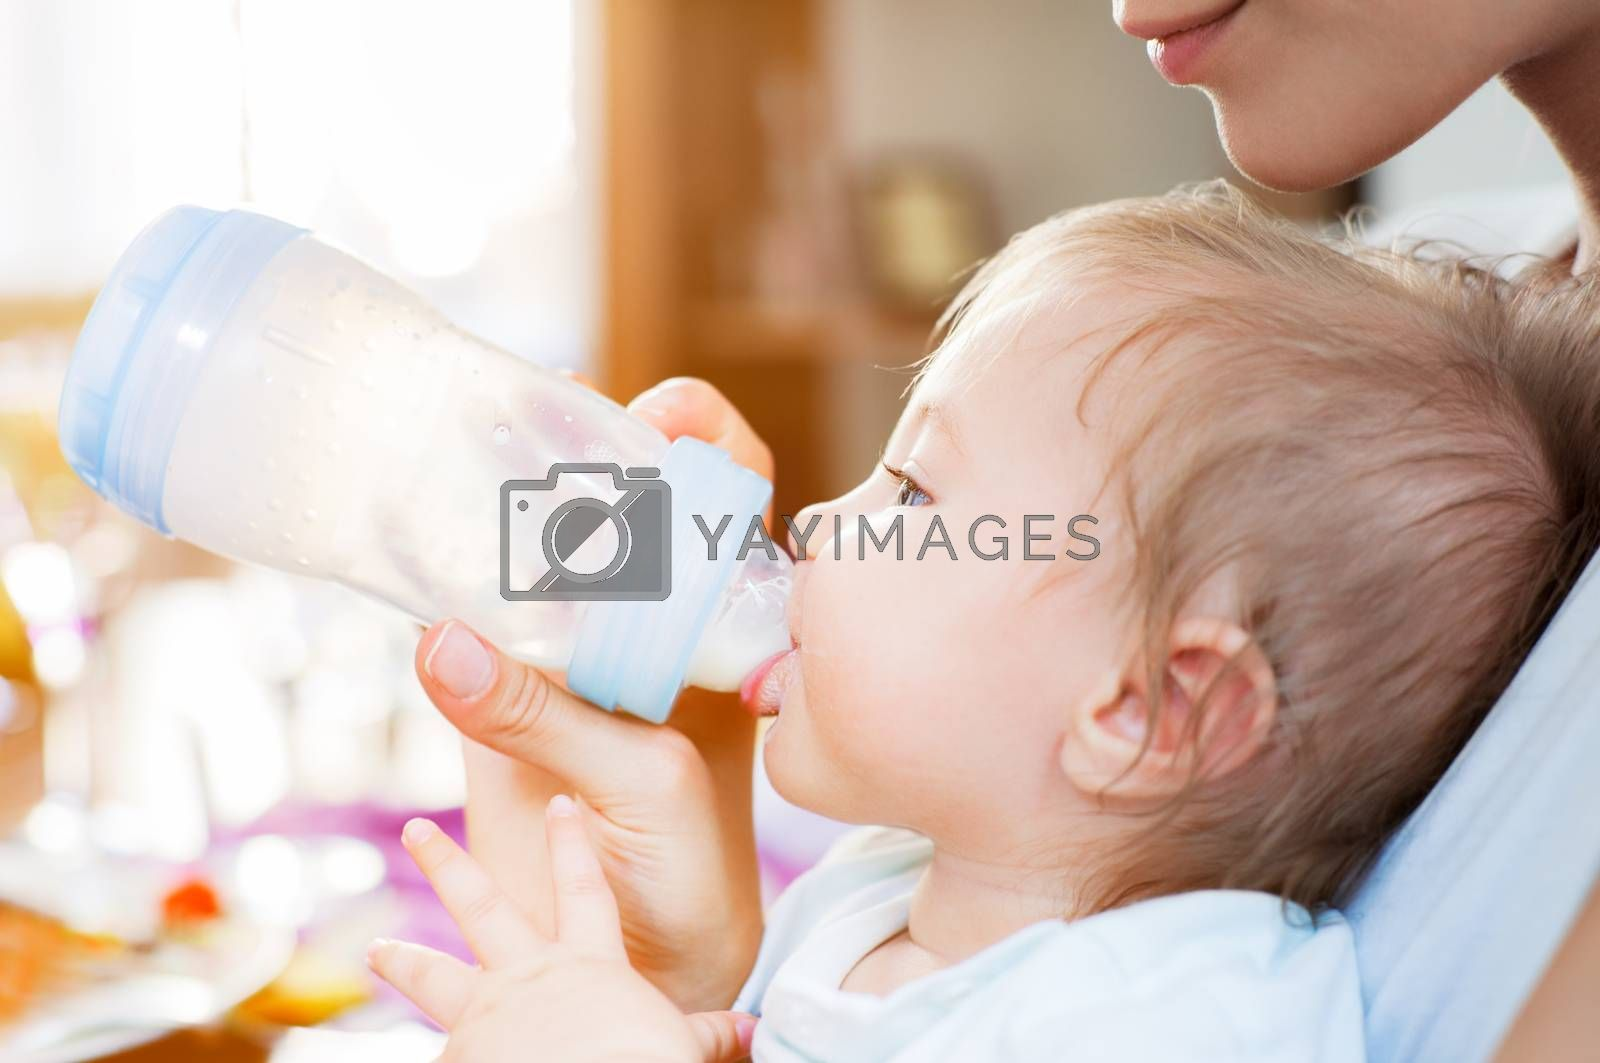 A baby boy is fed with milk from a pacifier bottle by his young mother.